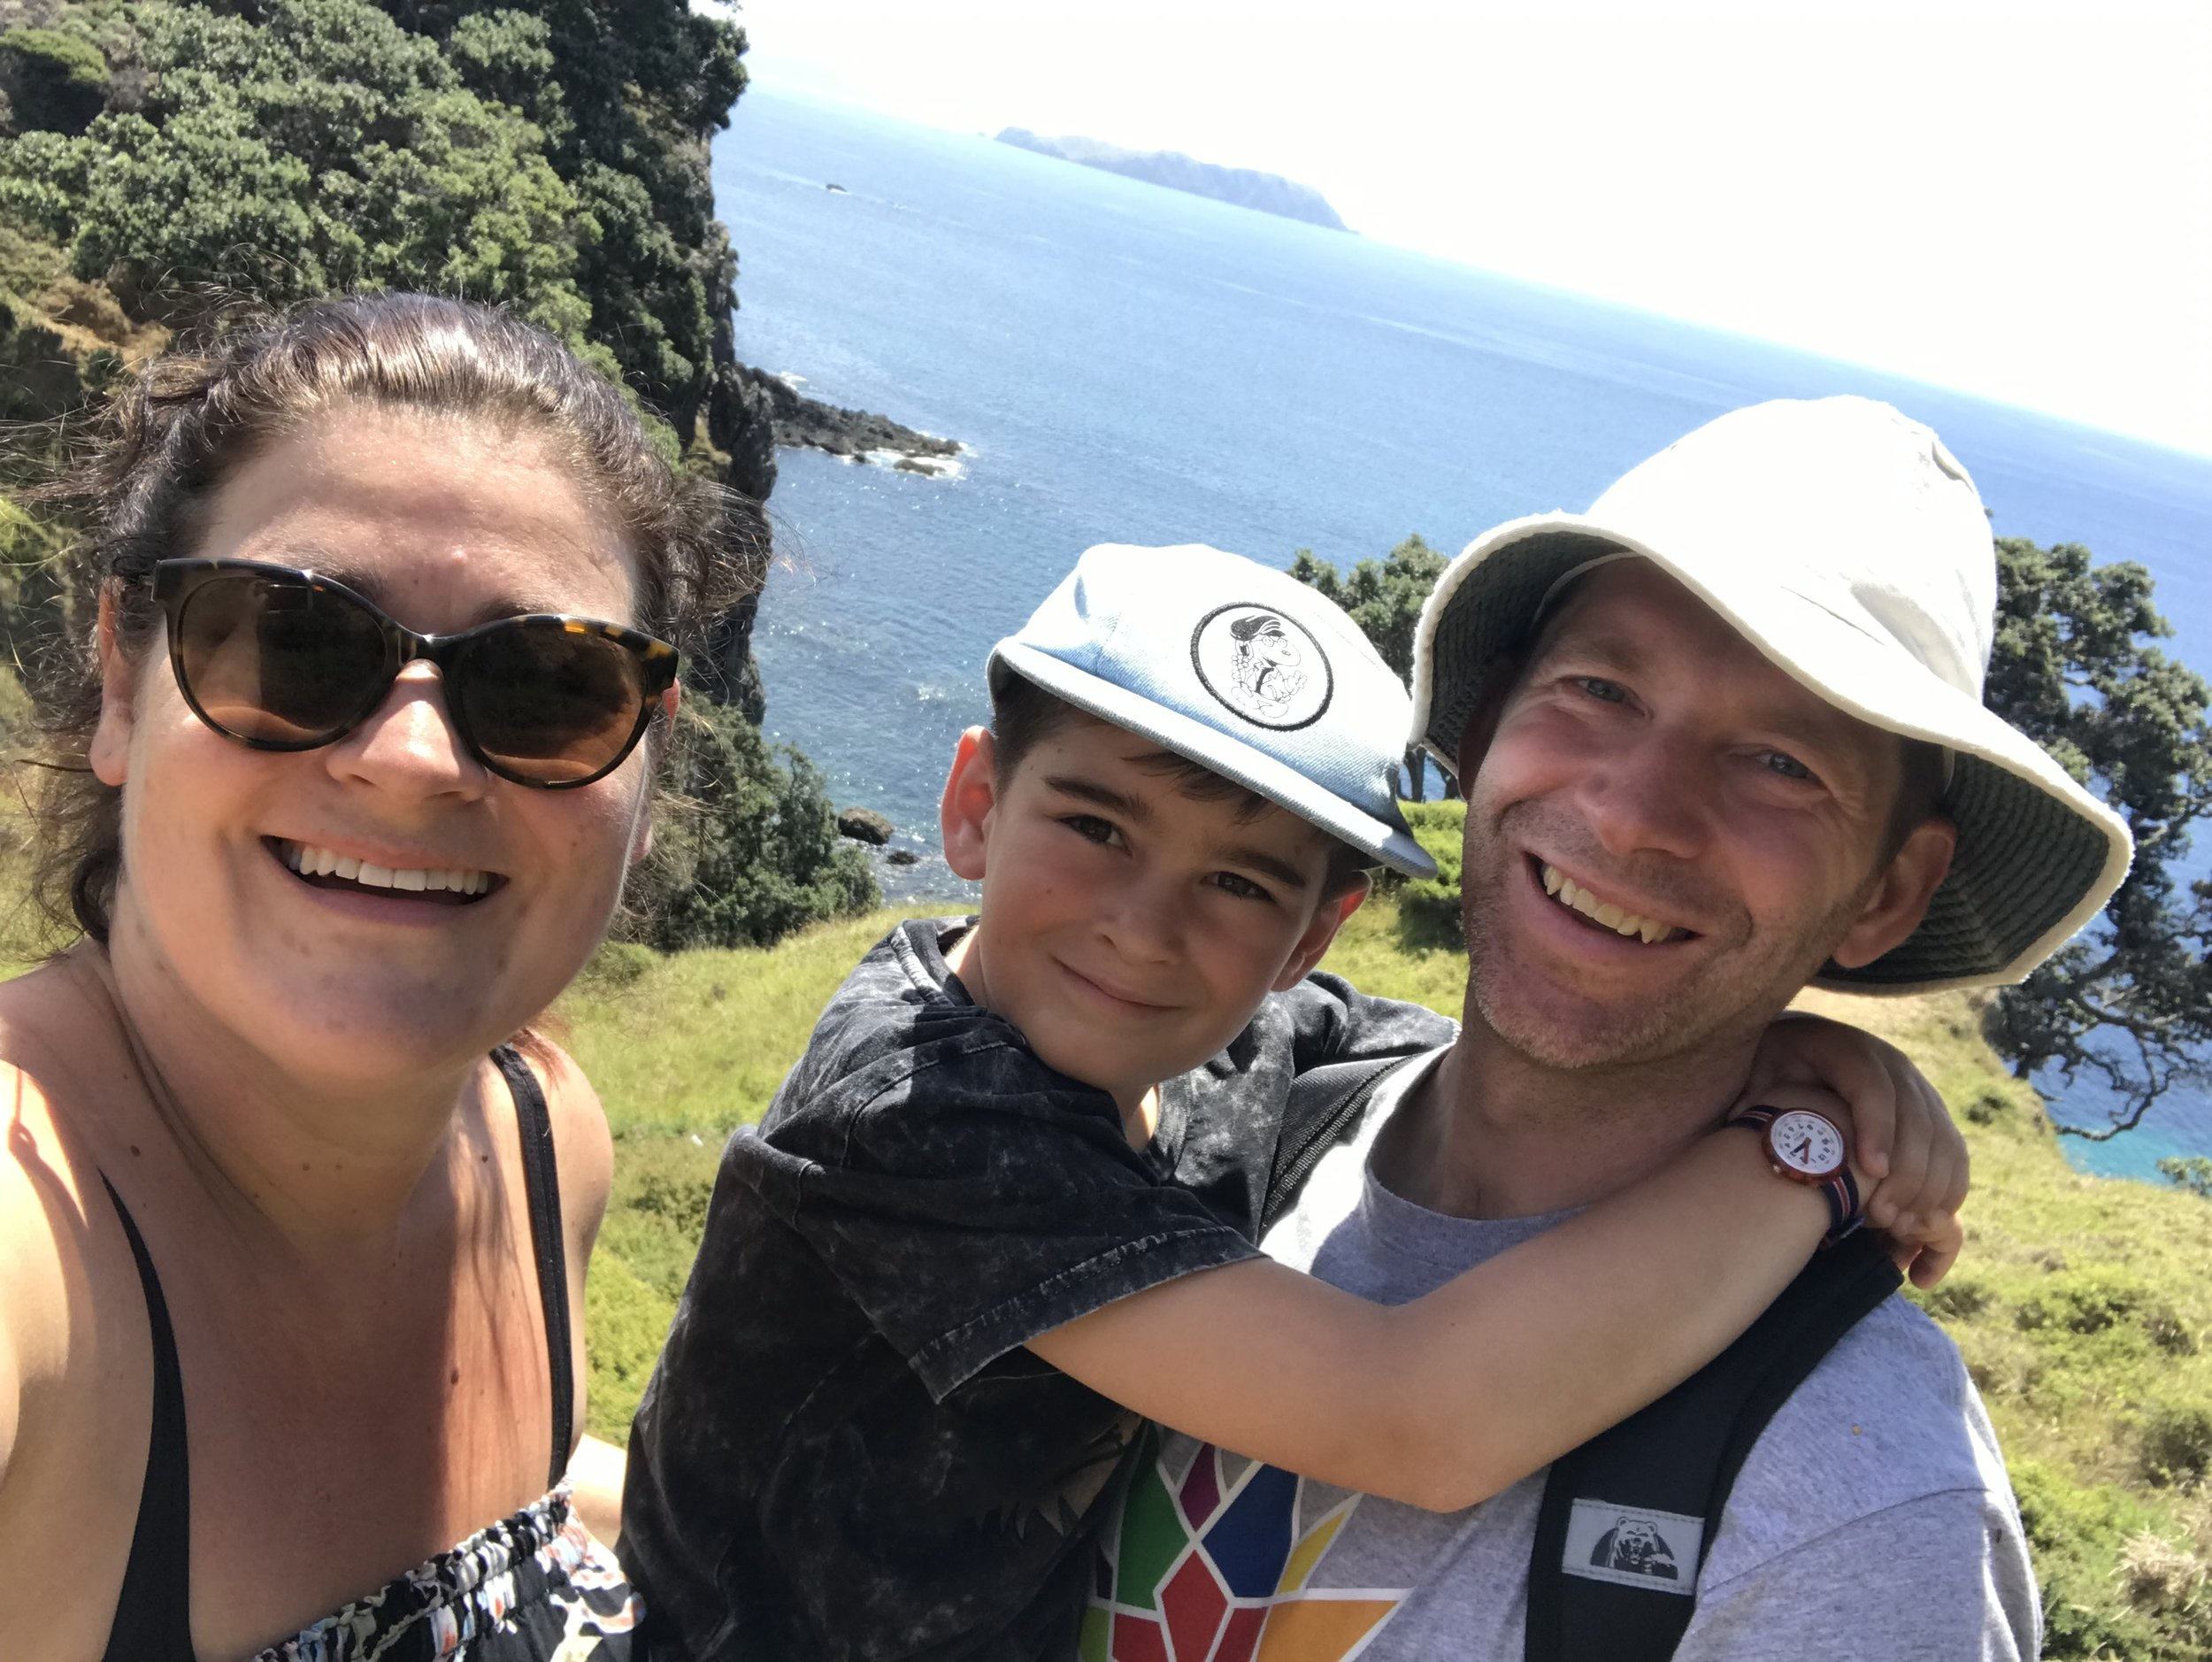 Our 6km headland hike in Northland this summer